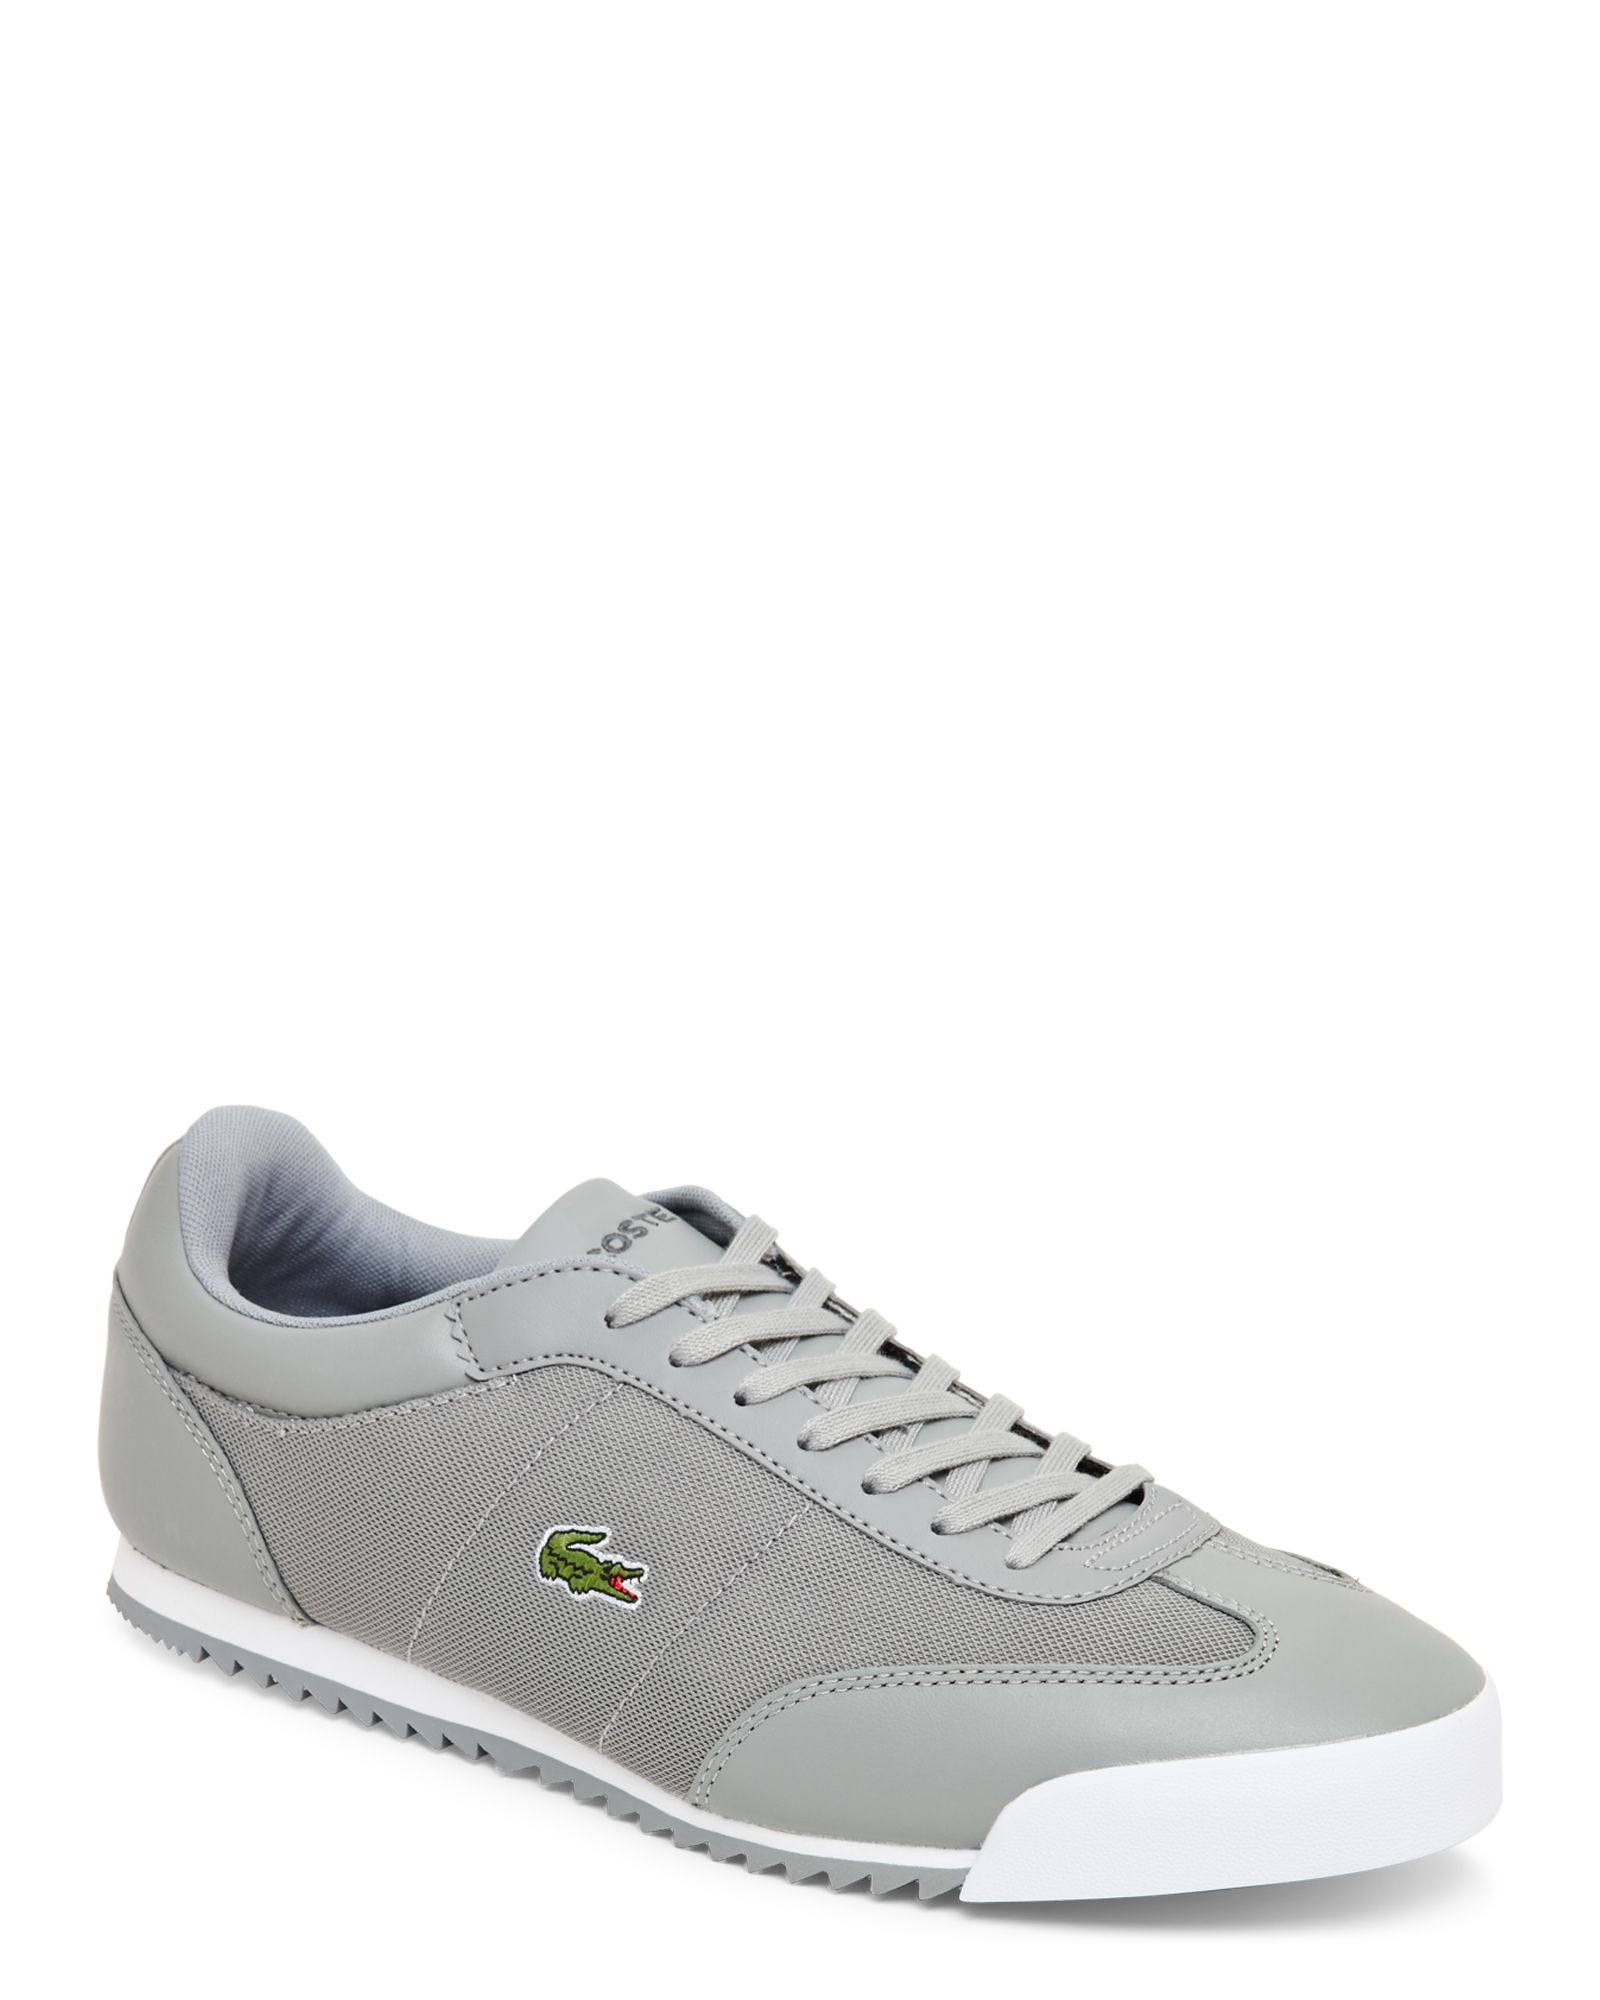 abaa40ce8dad8 Lacoste Grey Romeau 216 1 SPM Low Top Sneakers Lacoste Shoes